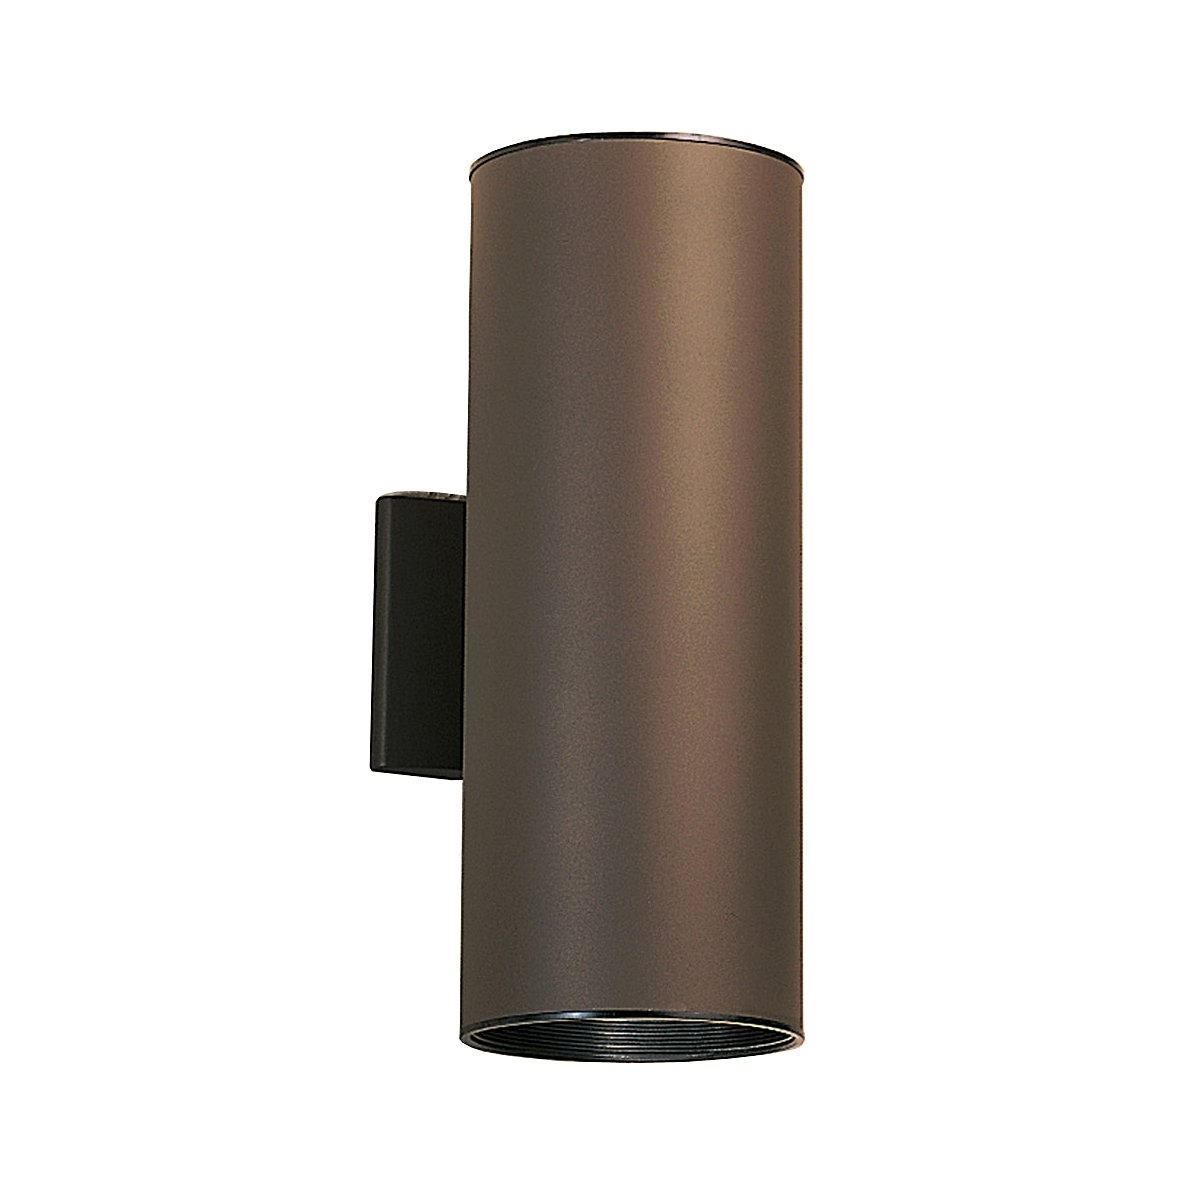 Light : Wooden Commercial Exterior Wall Lights Brown Simple Stunning For 2019 Commercial Outdoor Wall Lighting (View 12 of 20)